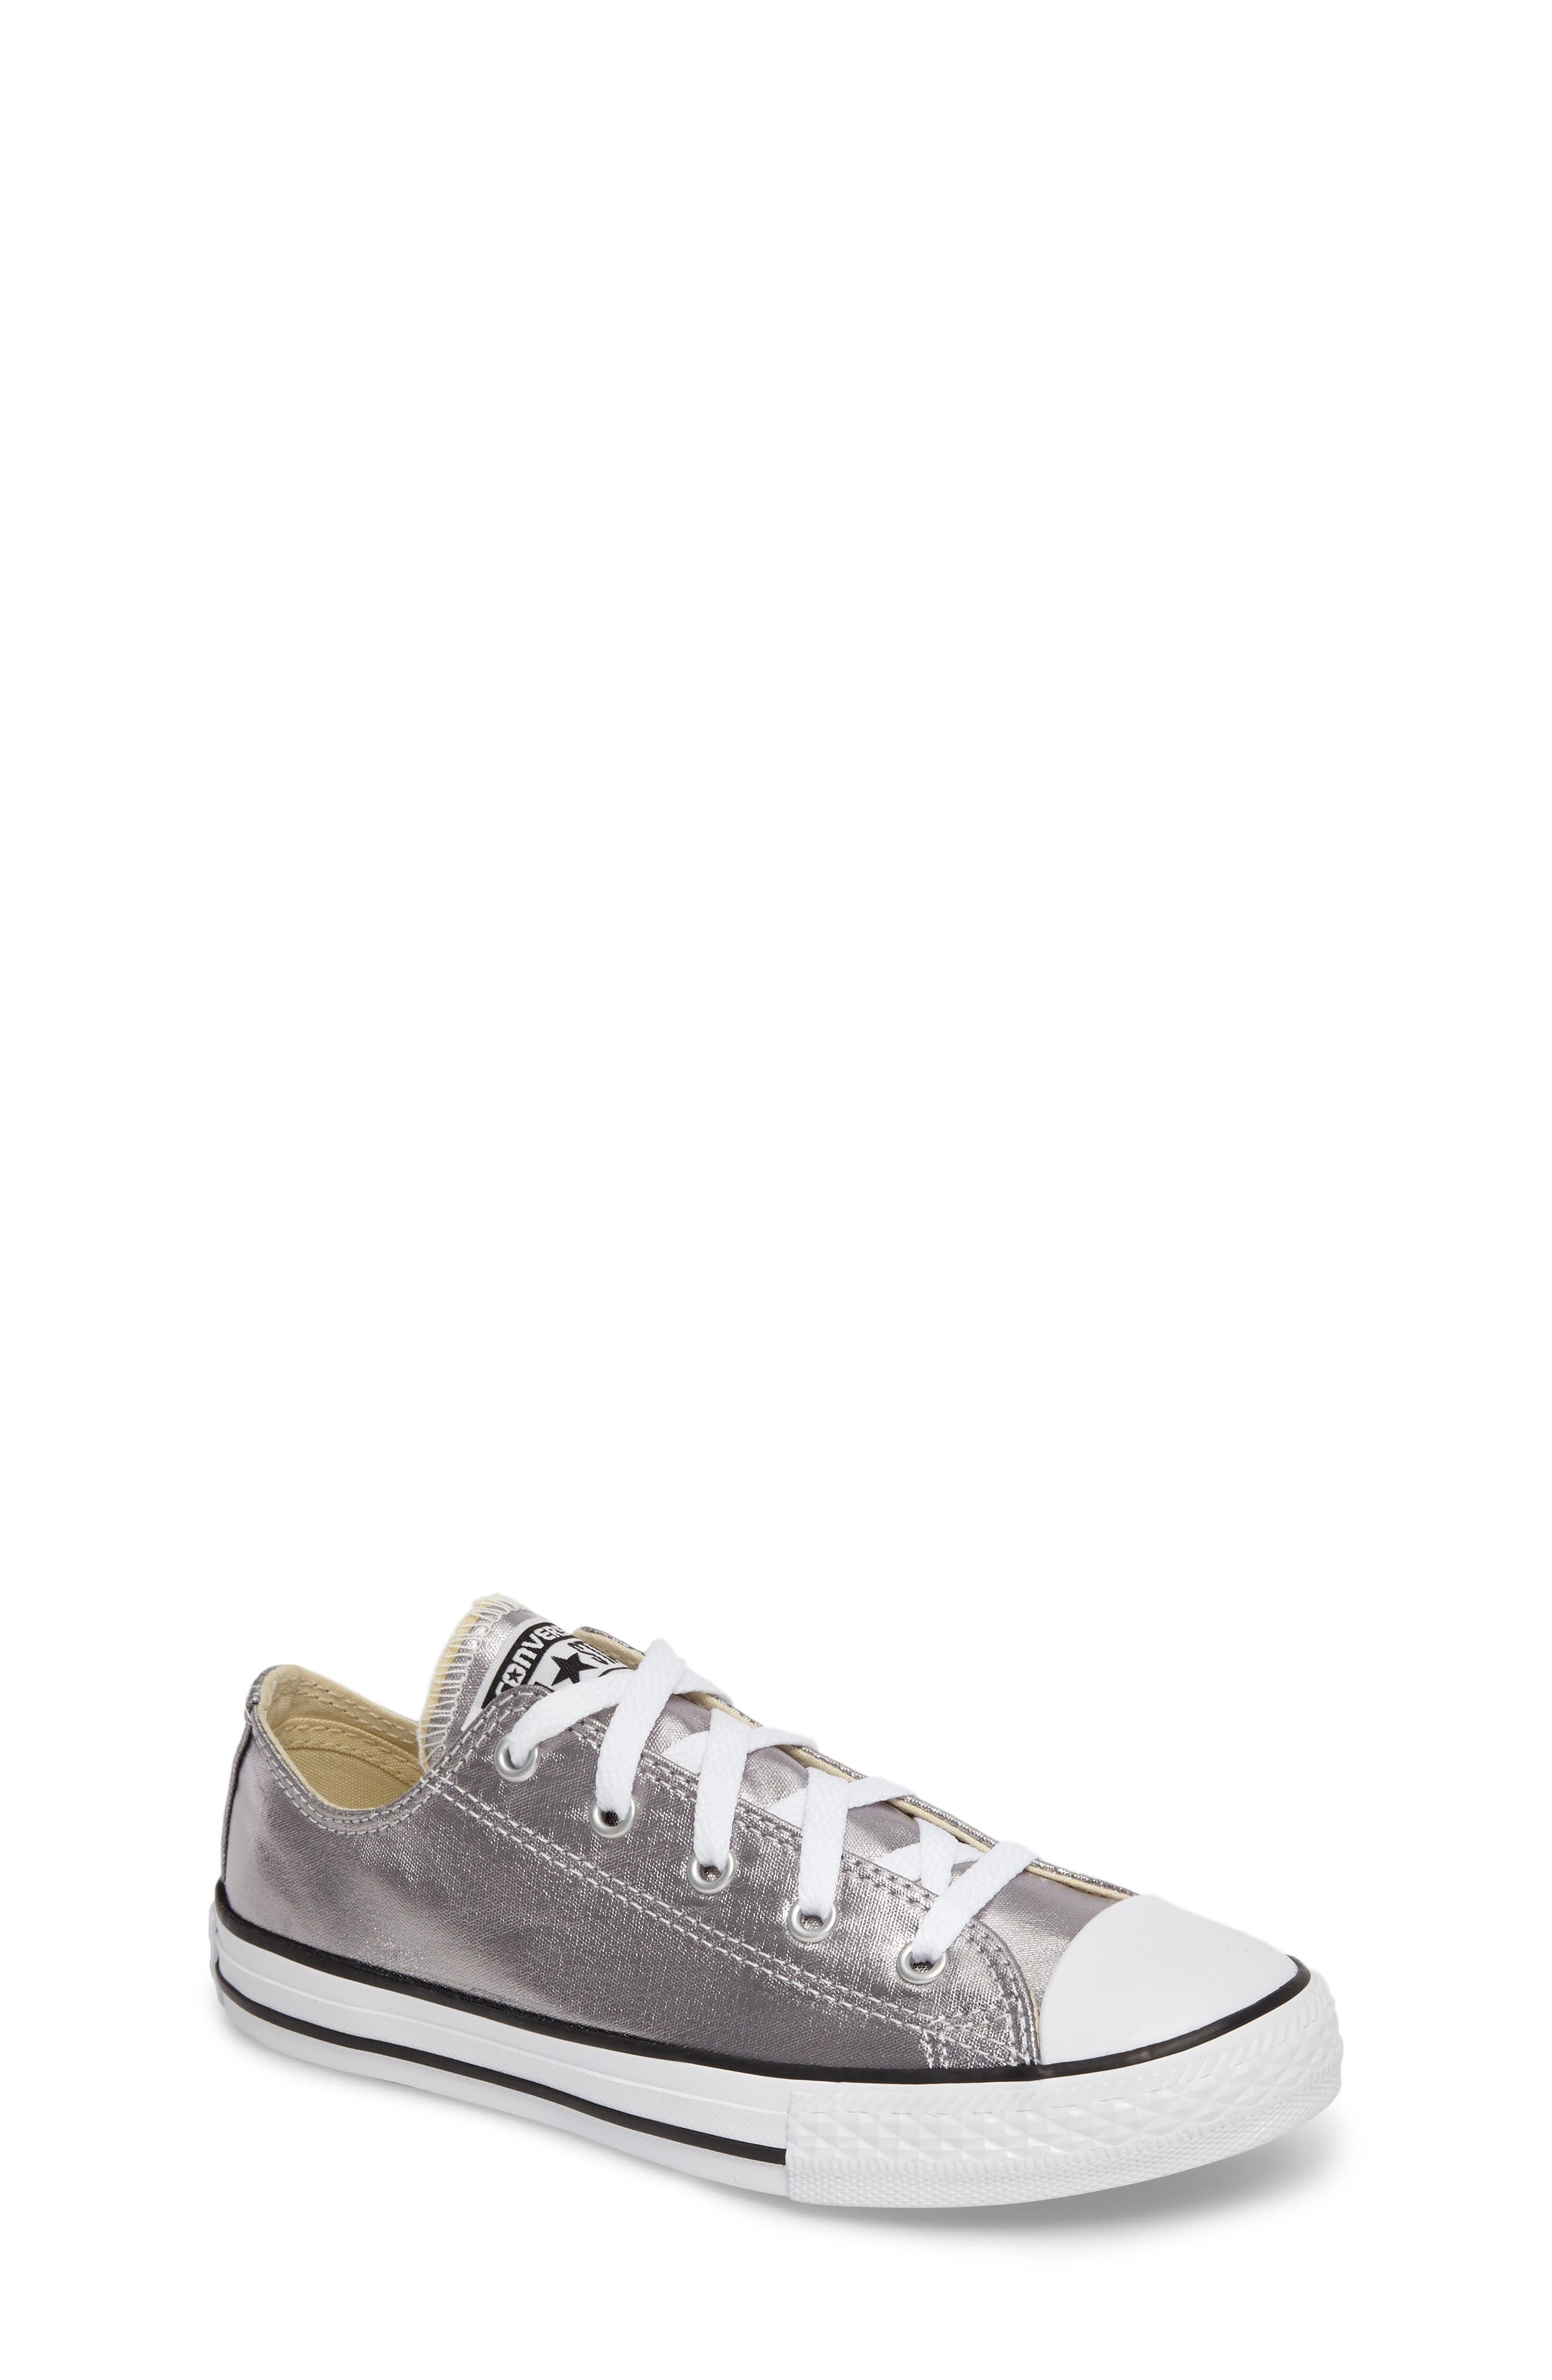 Alternate Image 1 Selected - Converse Chuck Taylor® All Star® Metallic Sneaker (Baby, Walker, Toddler & Little Kid)